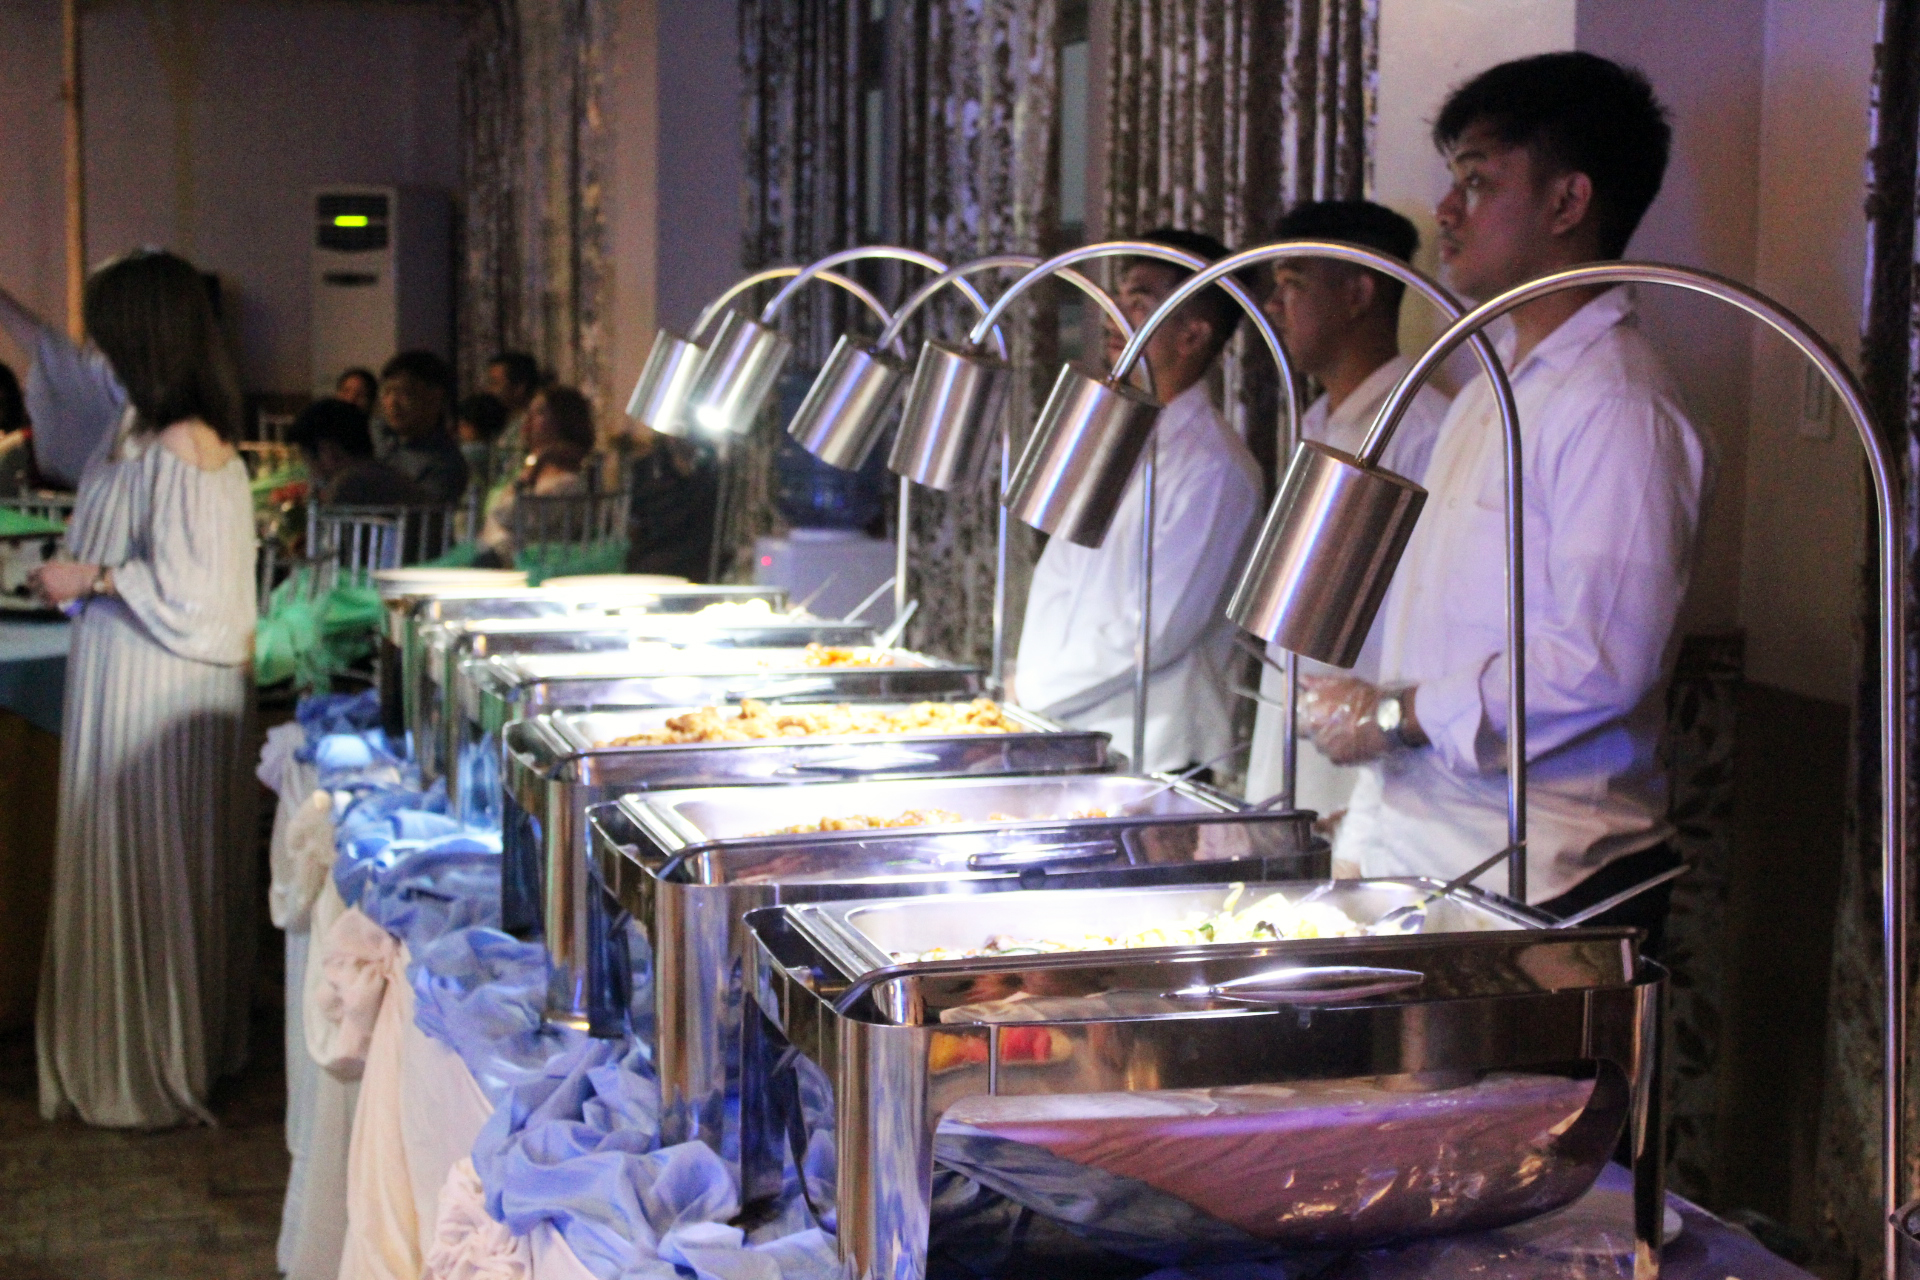 buffet catering rooms498.com